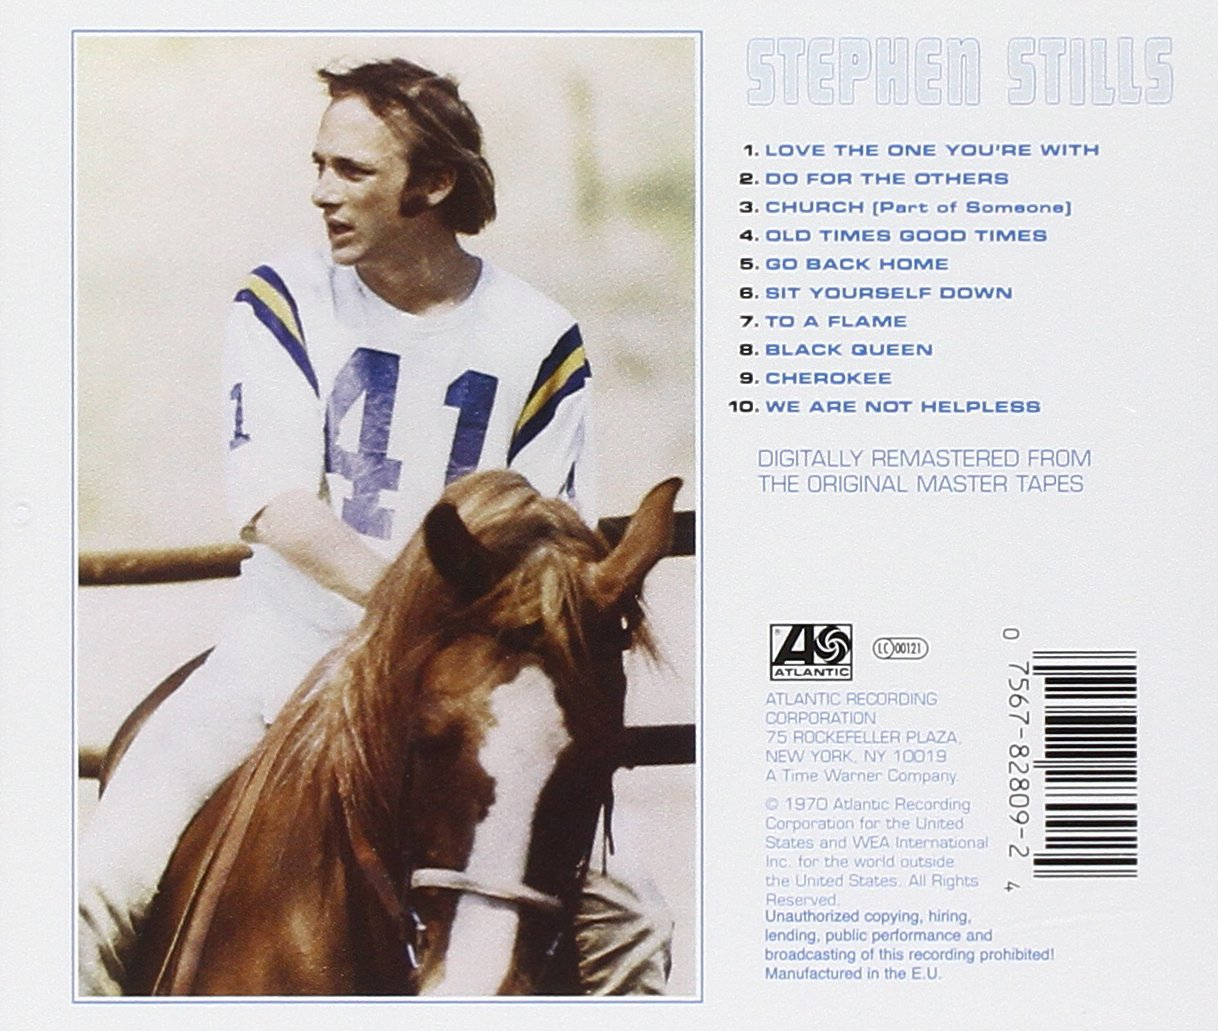 Stephen Stills - Stephen Stills - Amazon.com Music